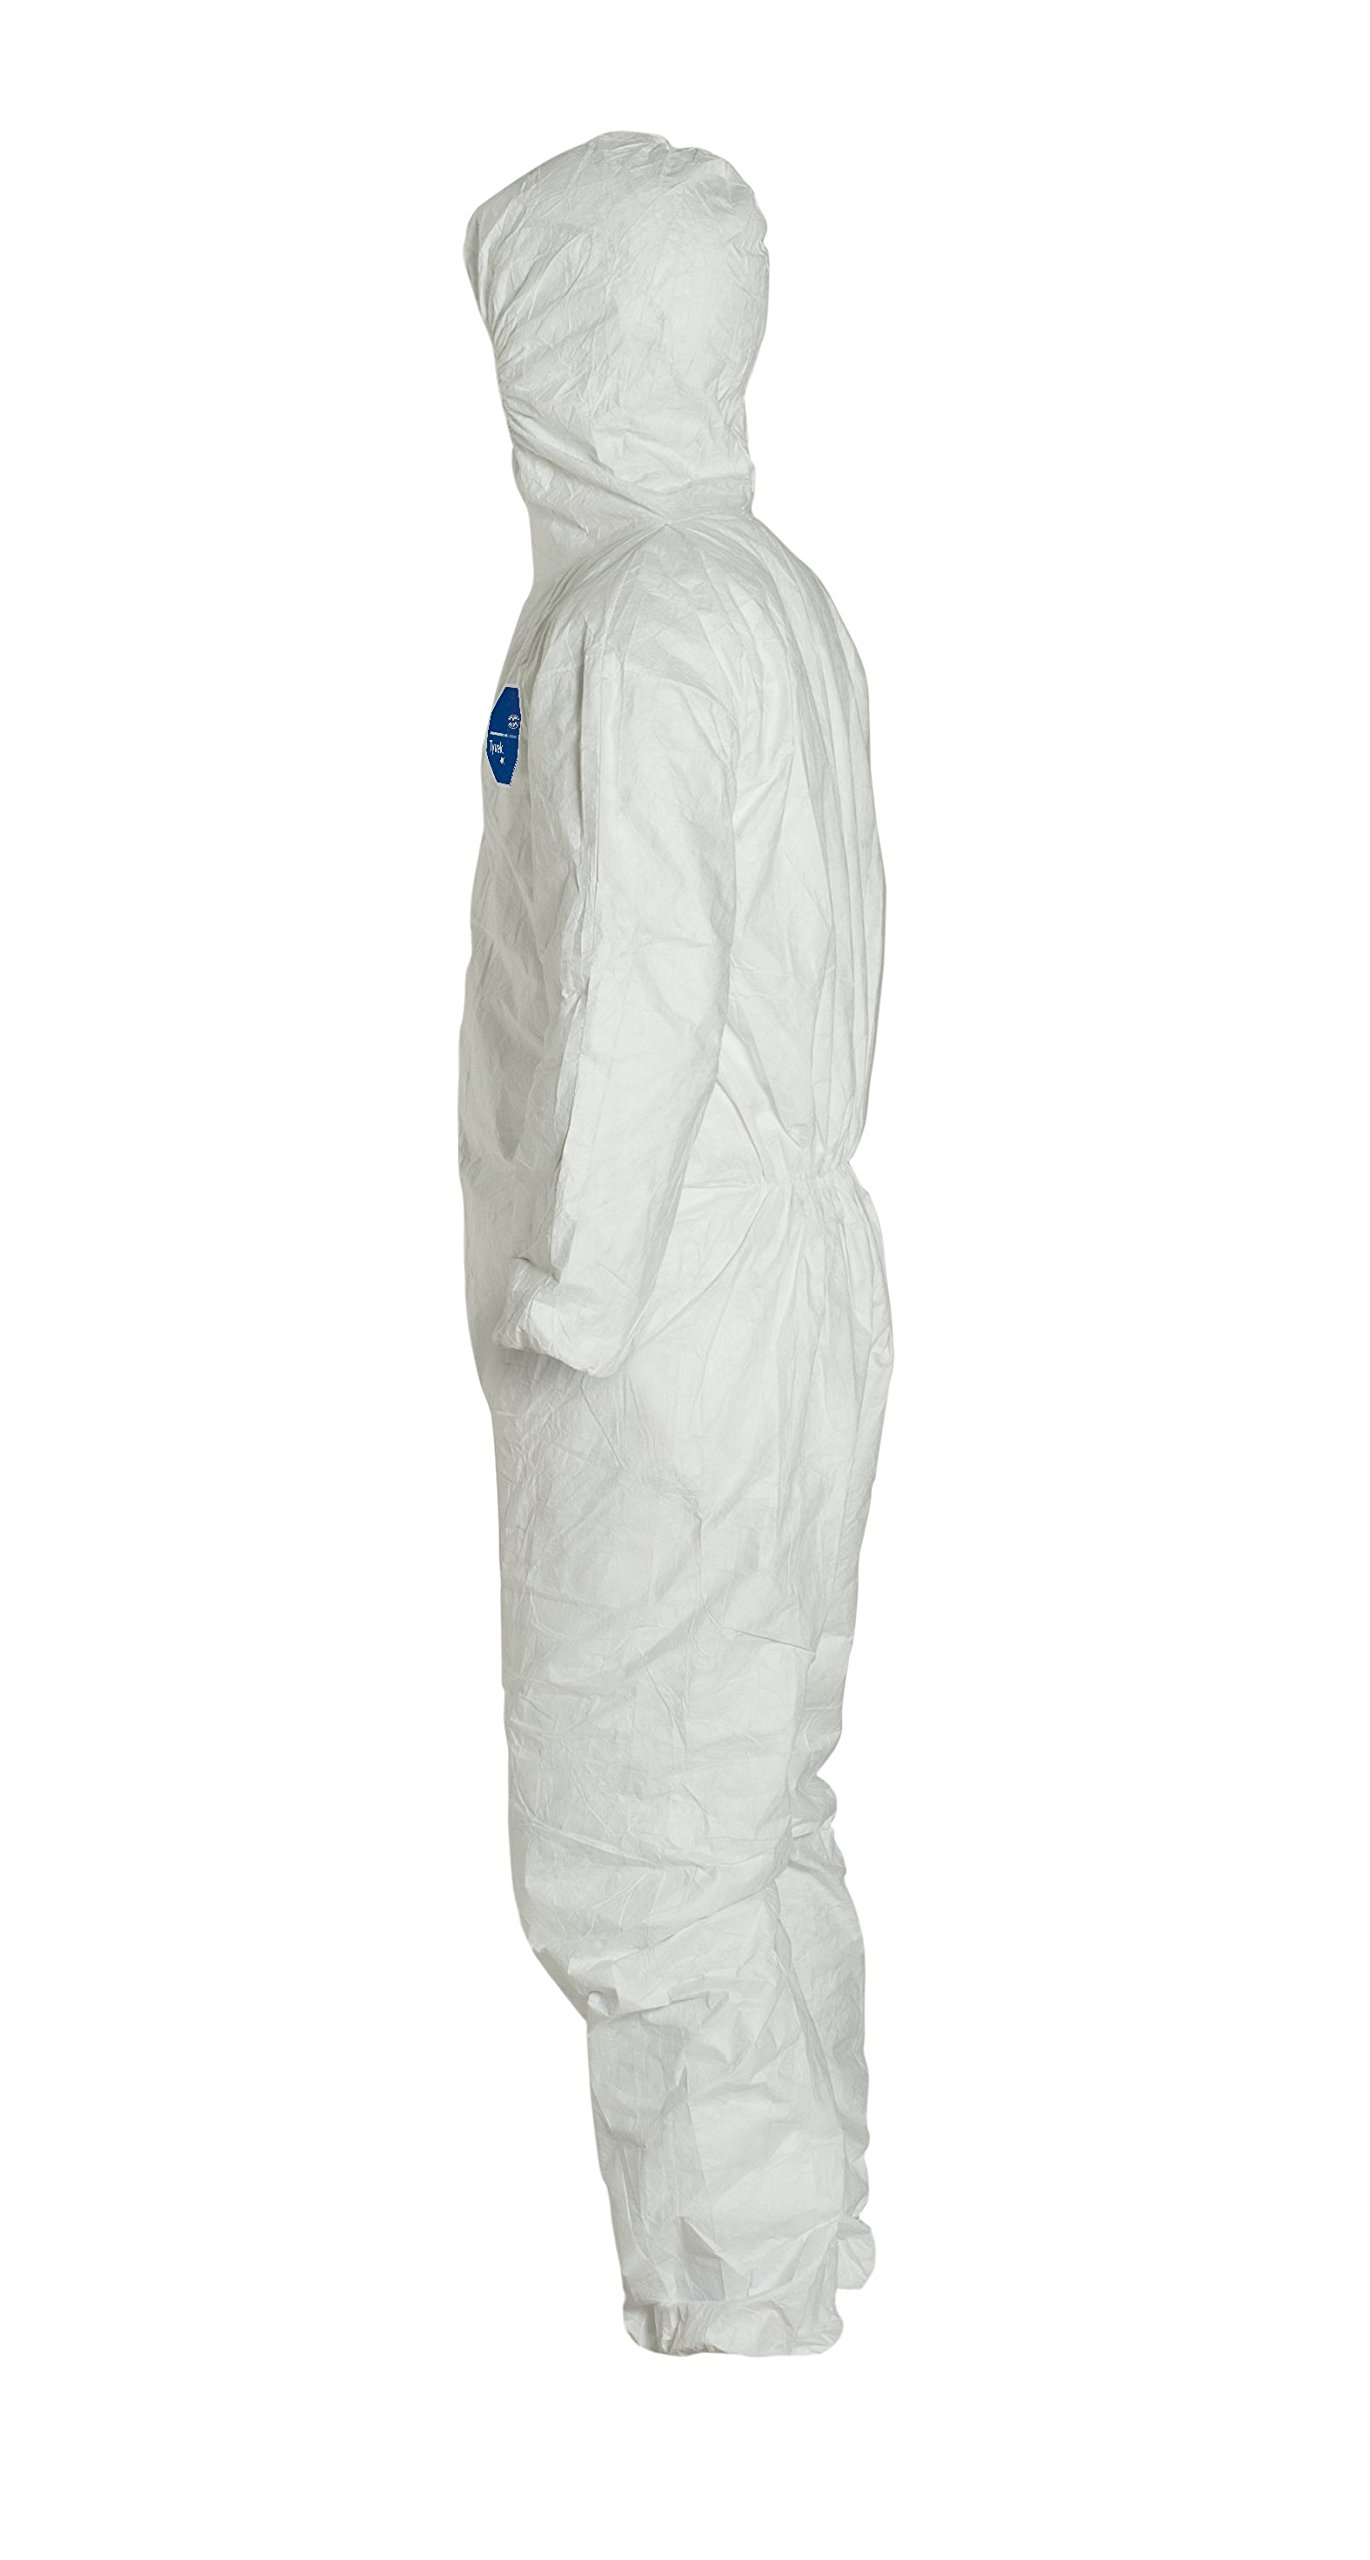 DuPont Tyvek 400 TY127S  Protective Coverall with Hood, Disposable, Elastic Cuff, White, X-Large (Pack of 25) by DuPont (Image #4)